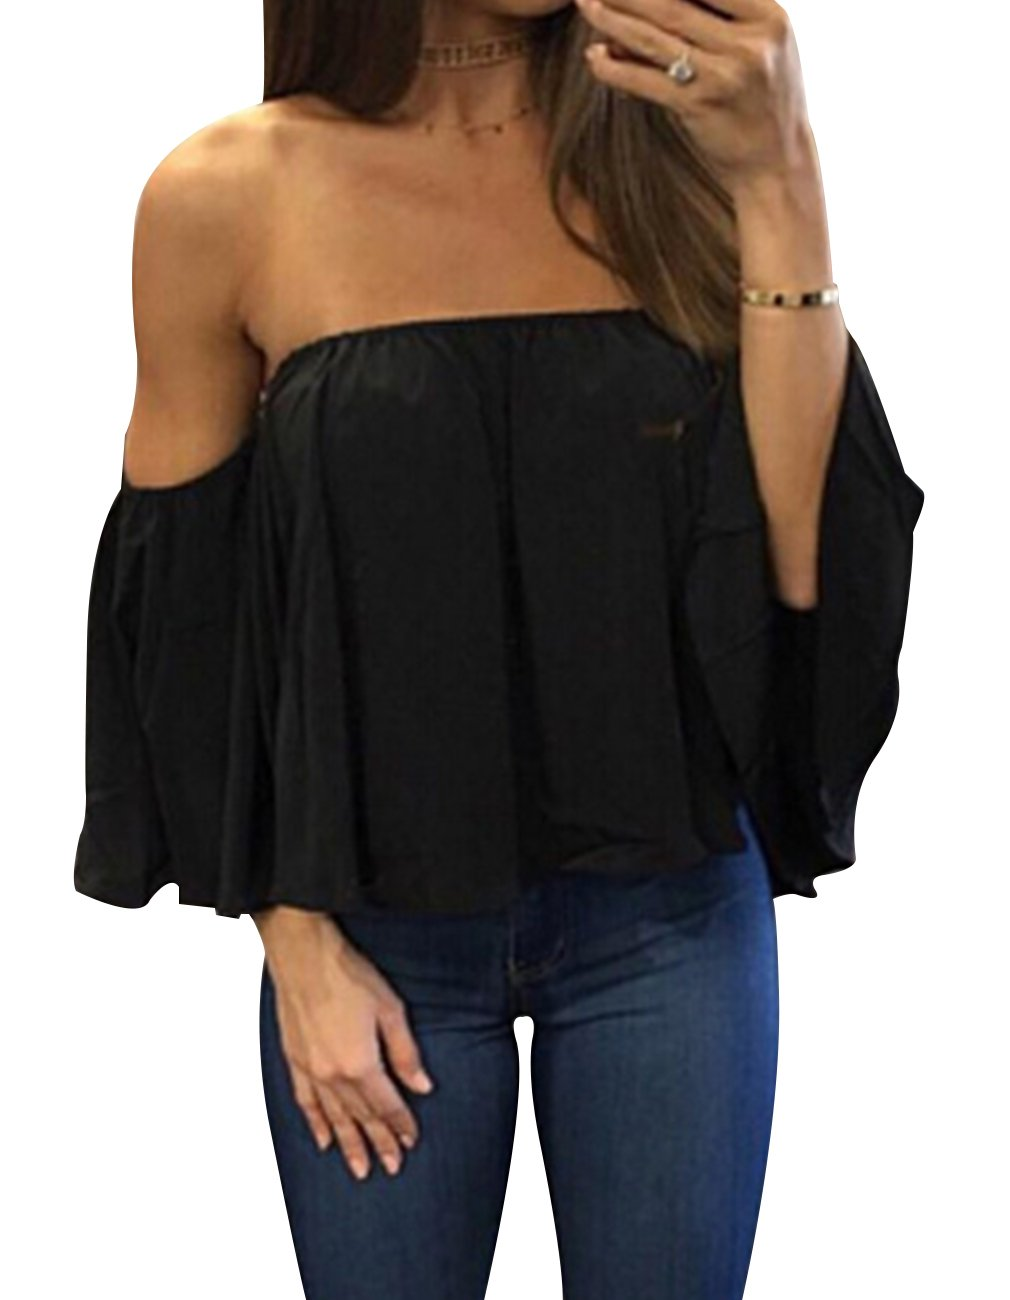 Women's Summer Off Shoulder Chiffon Blouses Short Sleeves Sexy Tops Shirt Fashion Casual Ruffles Solid Loose Fit Blouses T Shirt (S, Black)